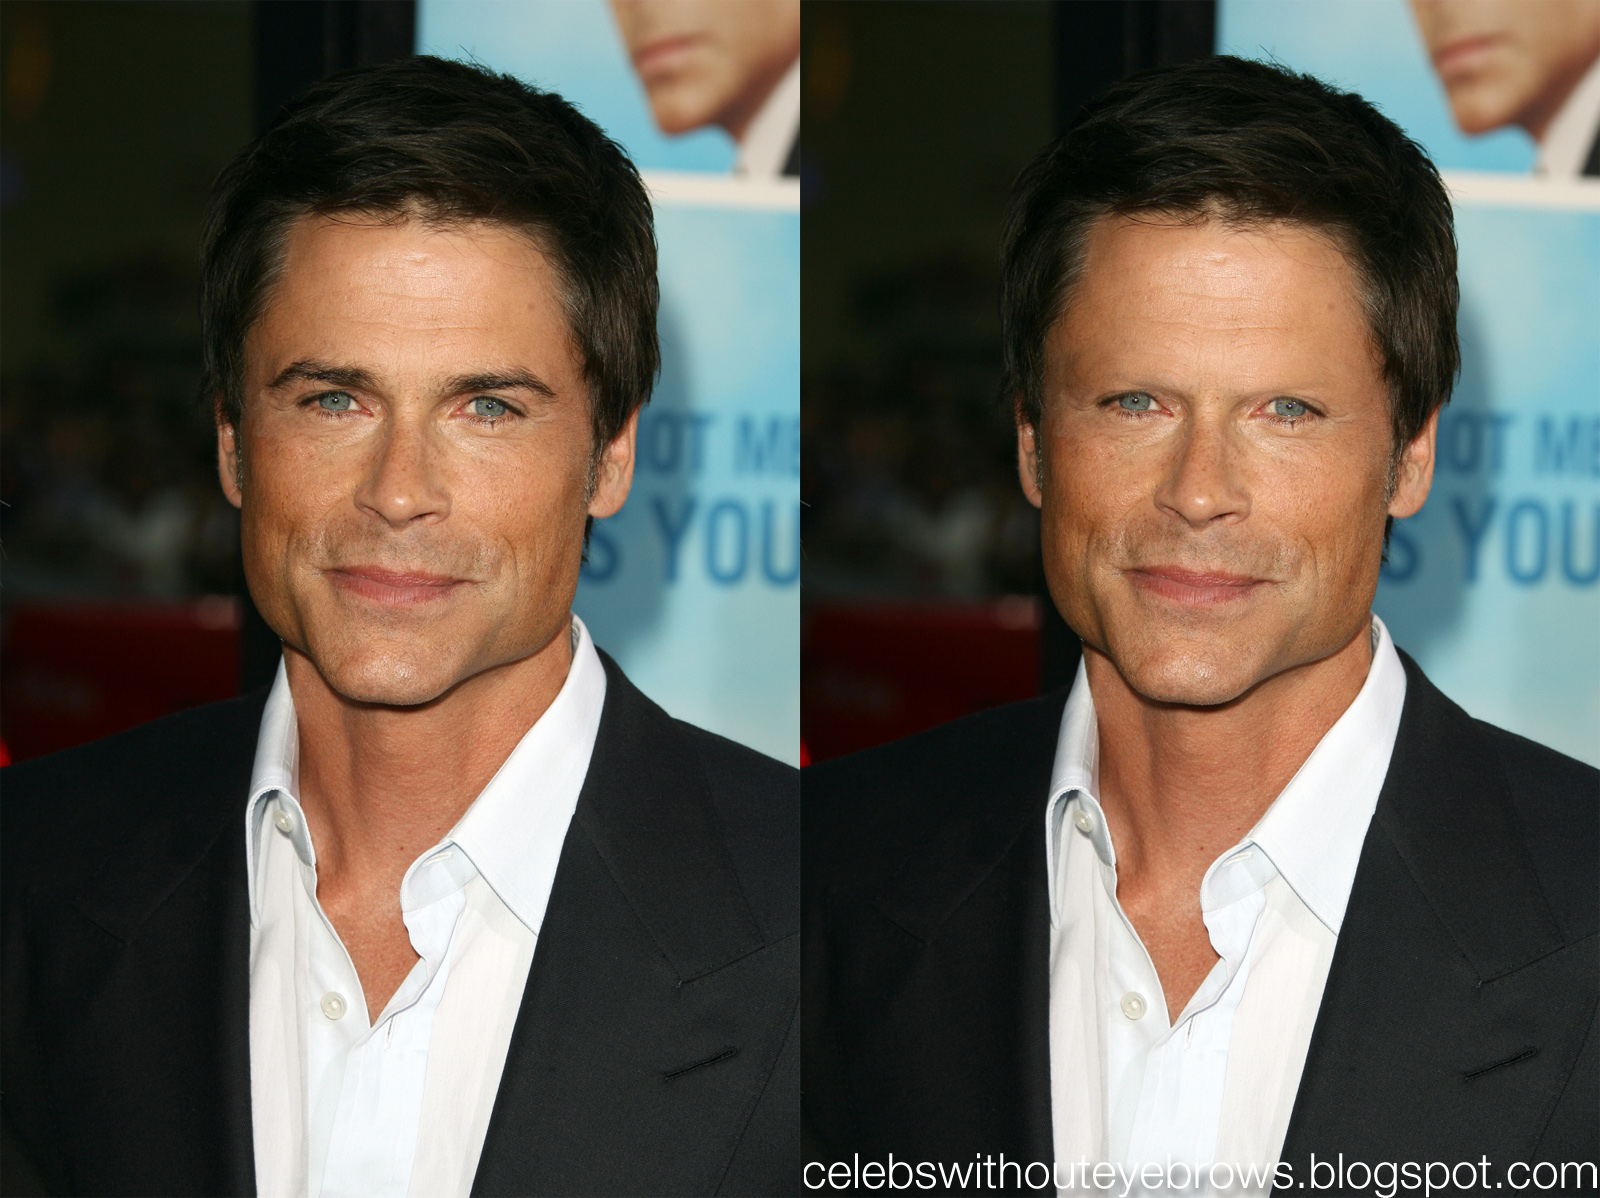 Celebs Without Eyebrows Rob Lowe